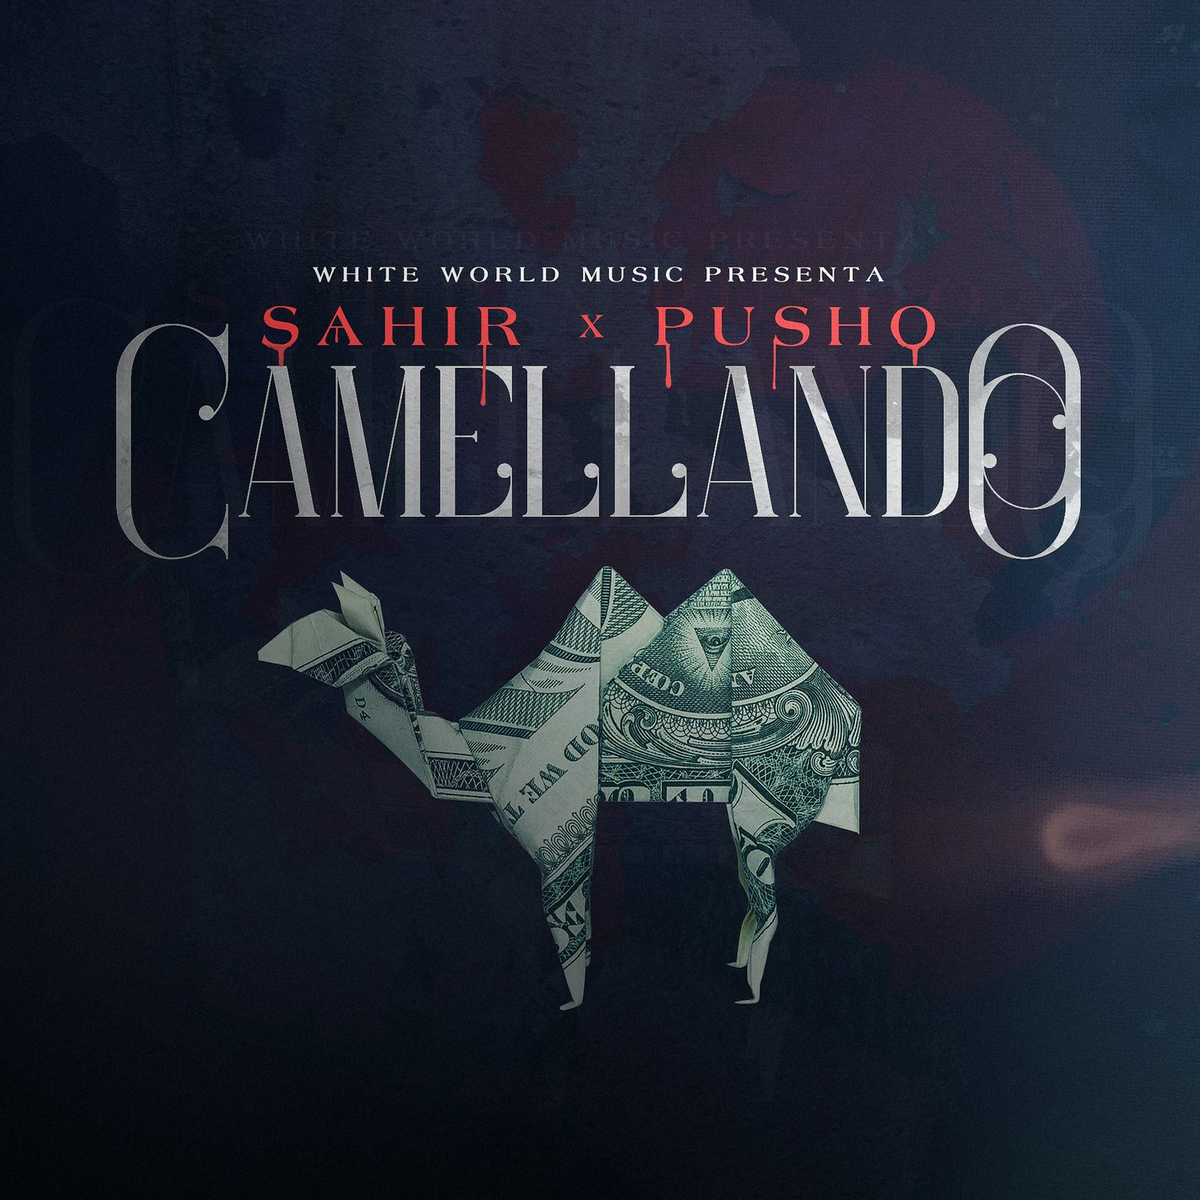 Sahir Ft. Pusho - Camellando.mp3